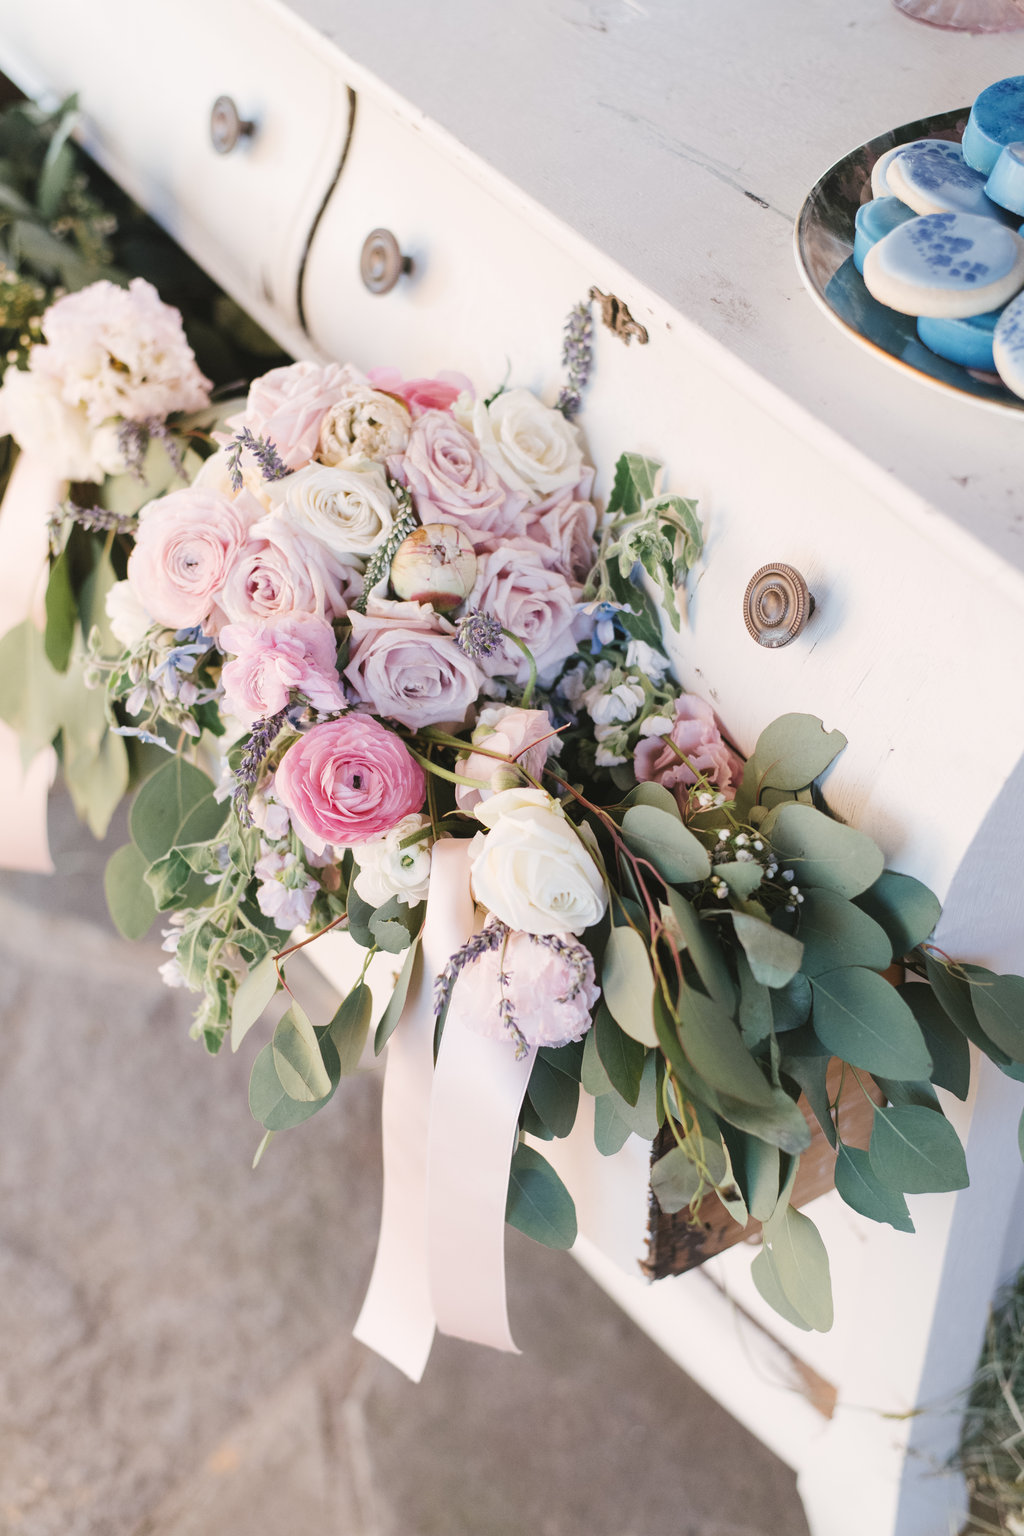 These pastel colors and greenery were gorgeous placed inside our vintage white dresser for this outdoor barn wedding we planned.